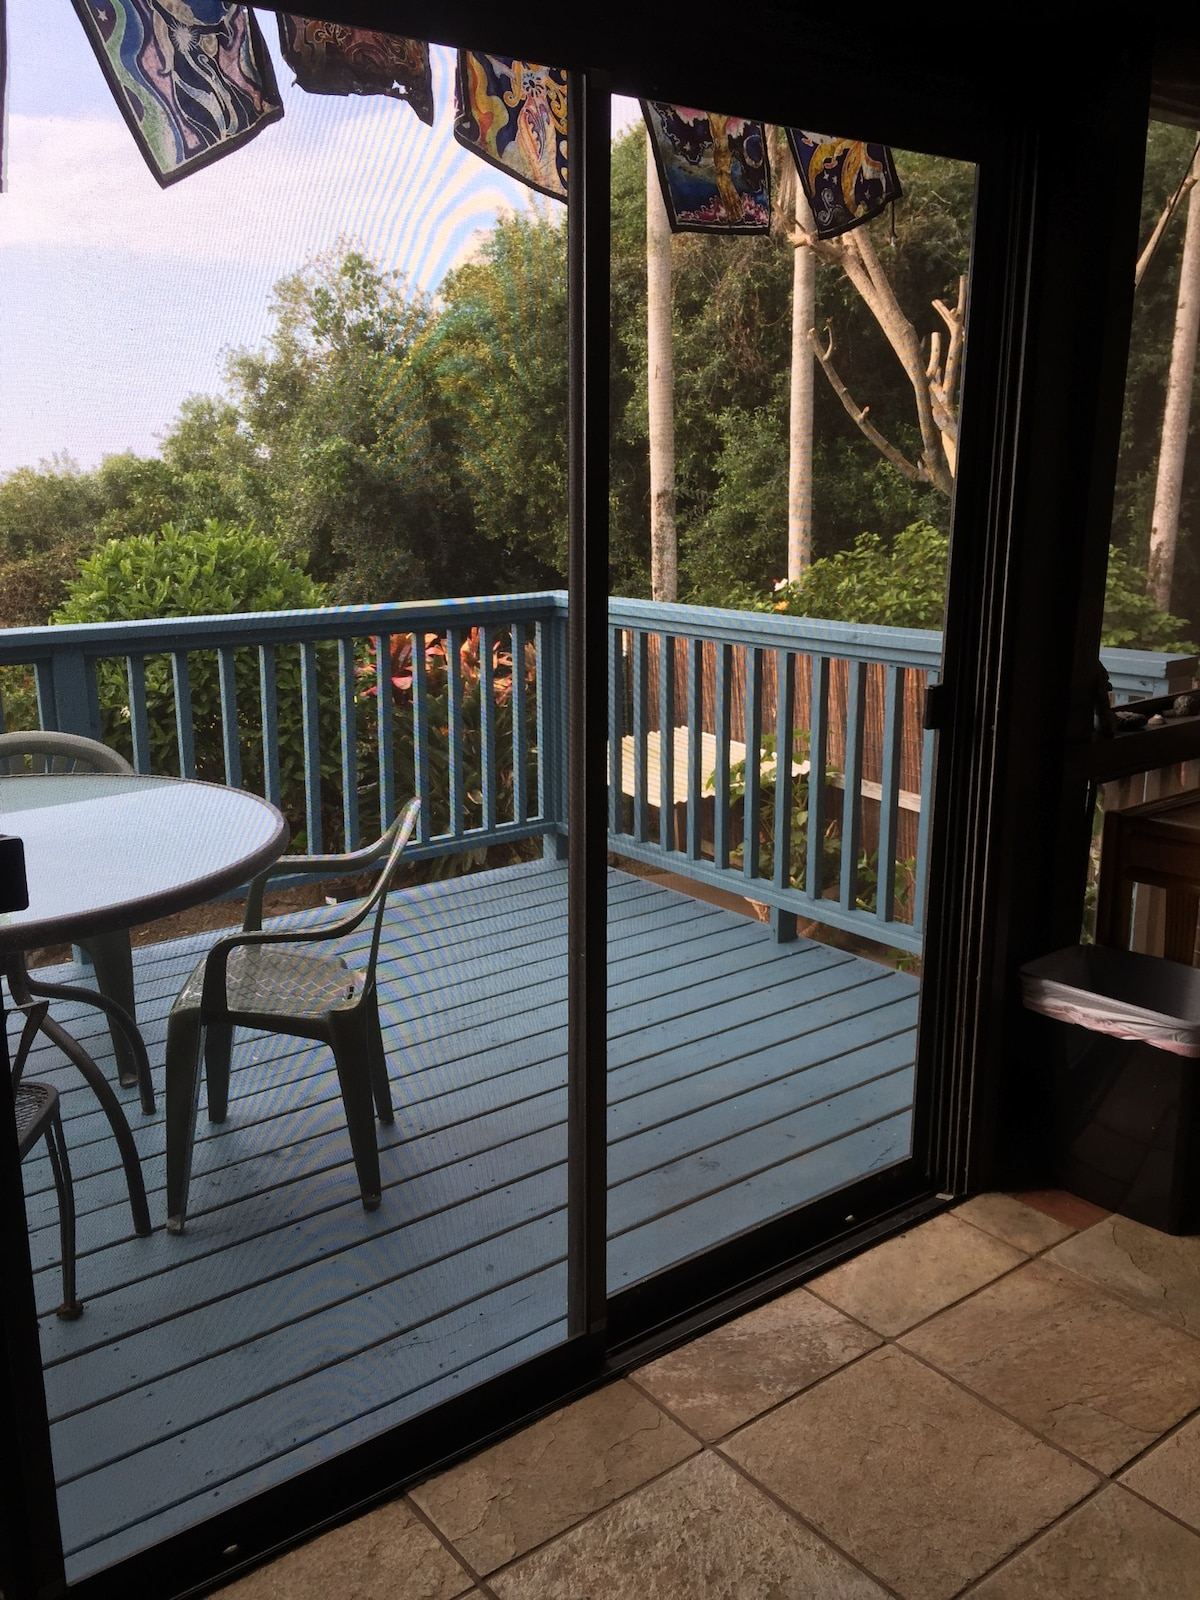 Step out to the outdoor lanai. Great place for enjoying a meal or morning yoga.